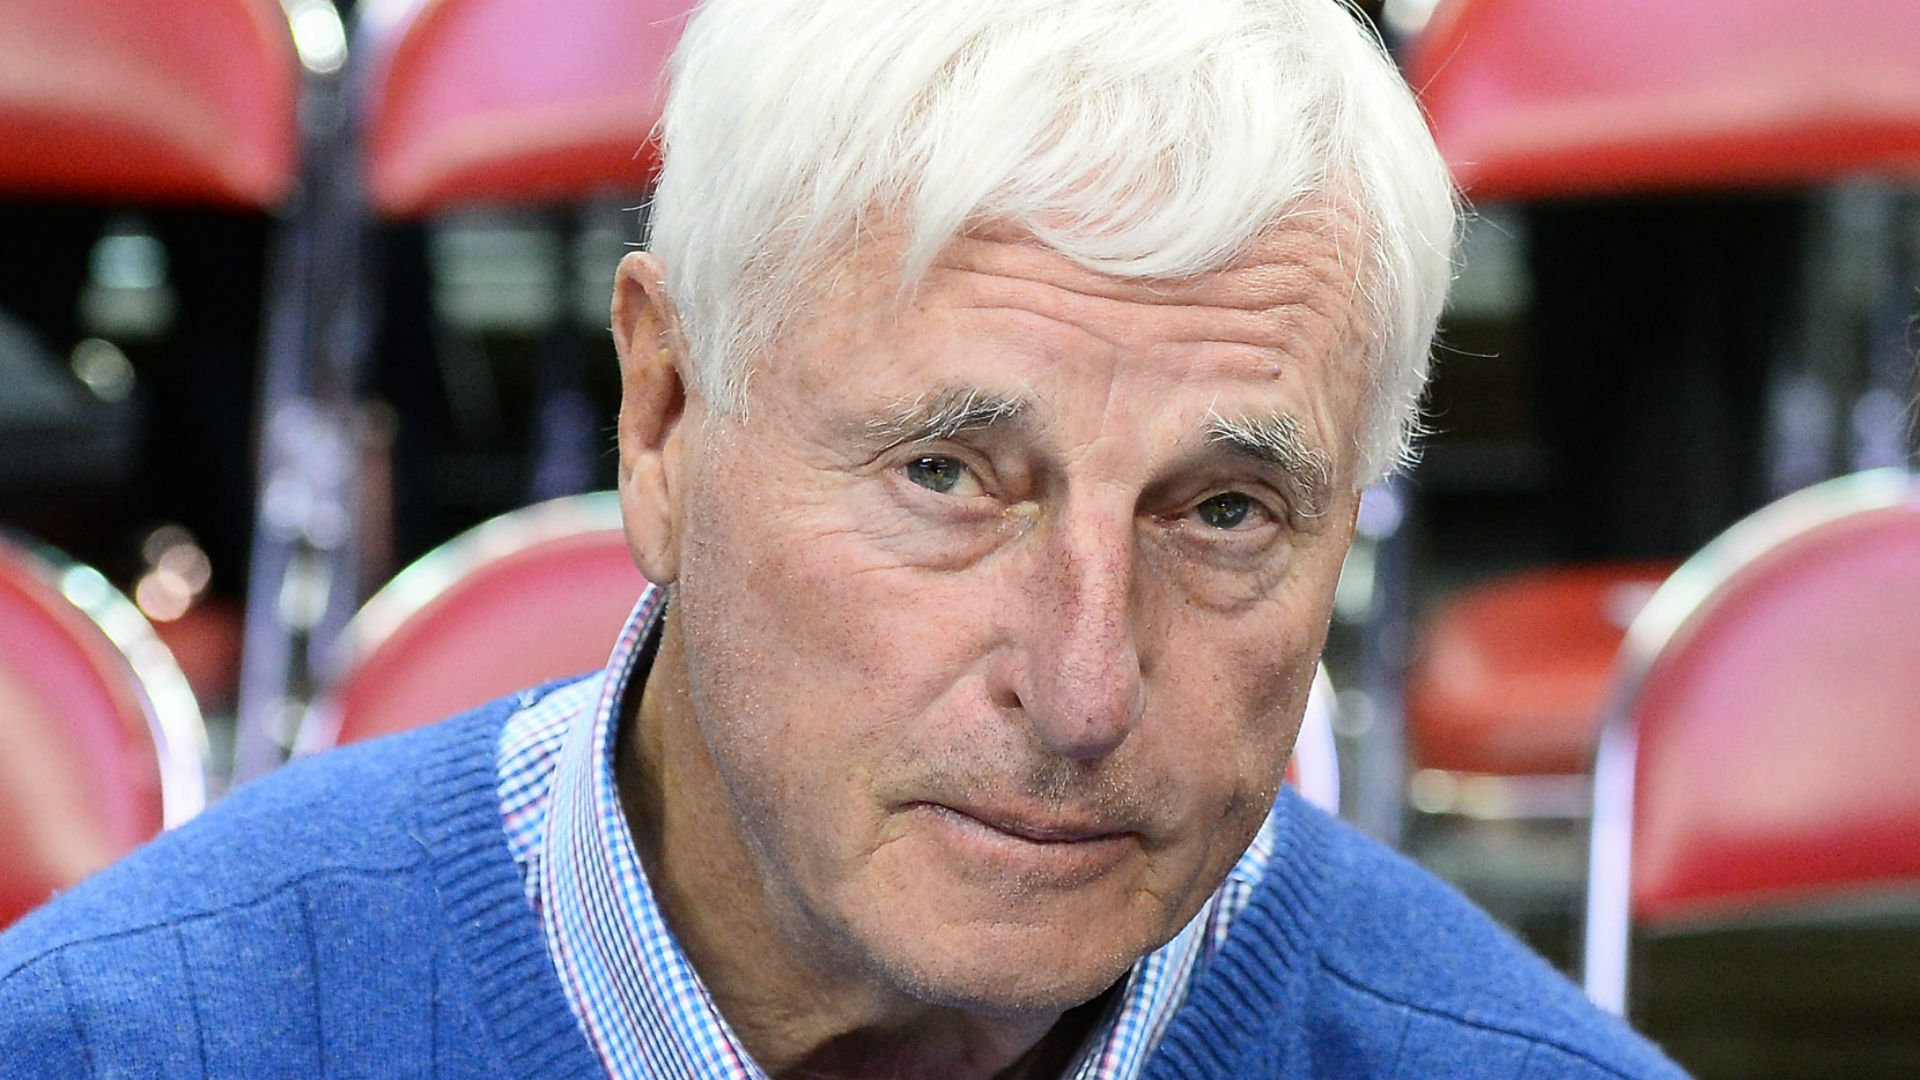 Bob Knight on former IU bosses - 'I hope they're all dead'